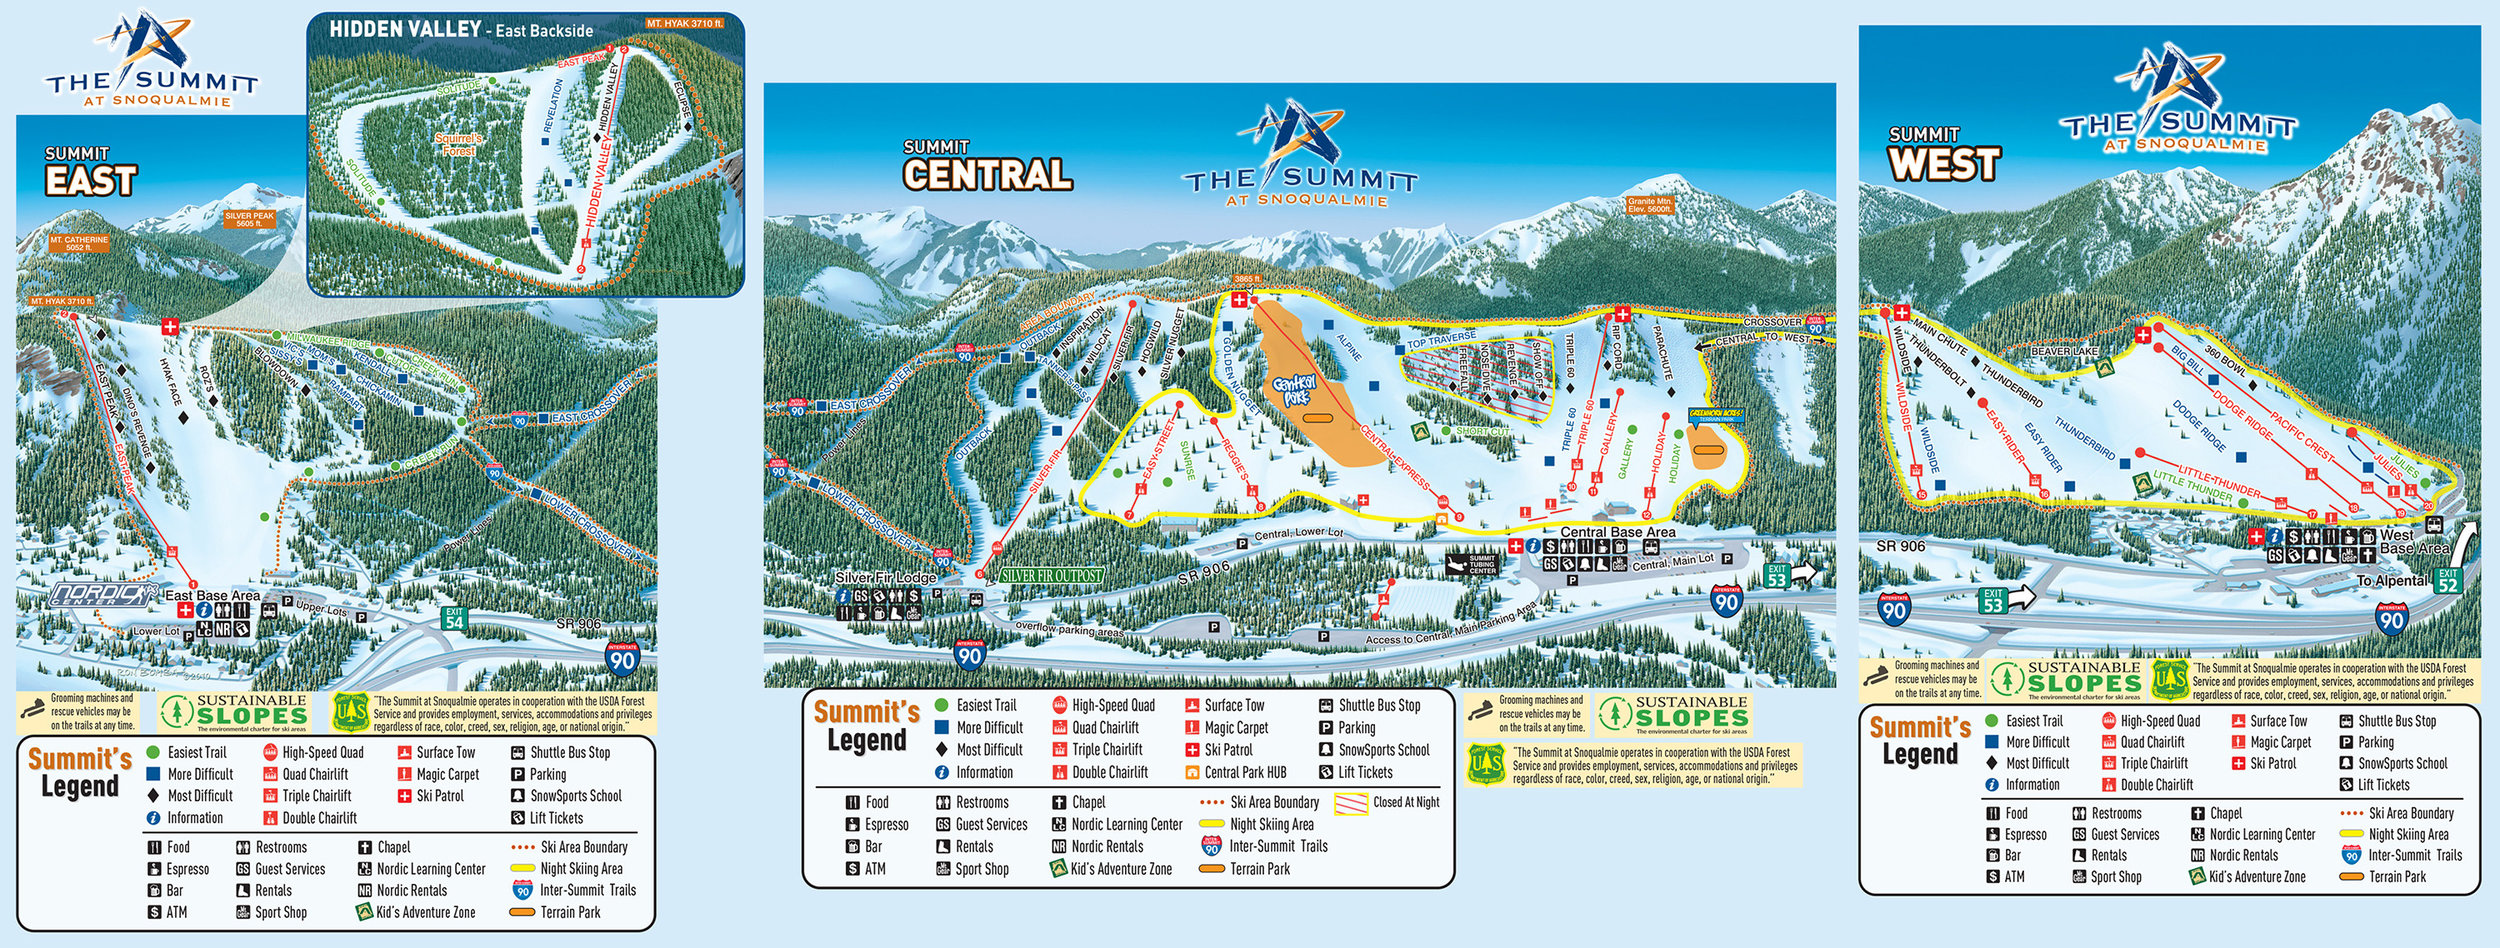 Summit Map